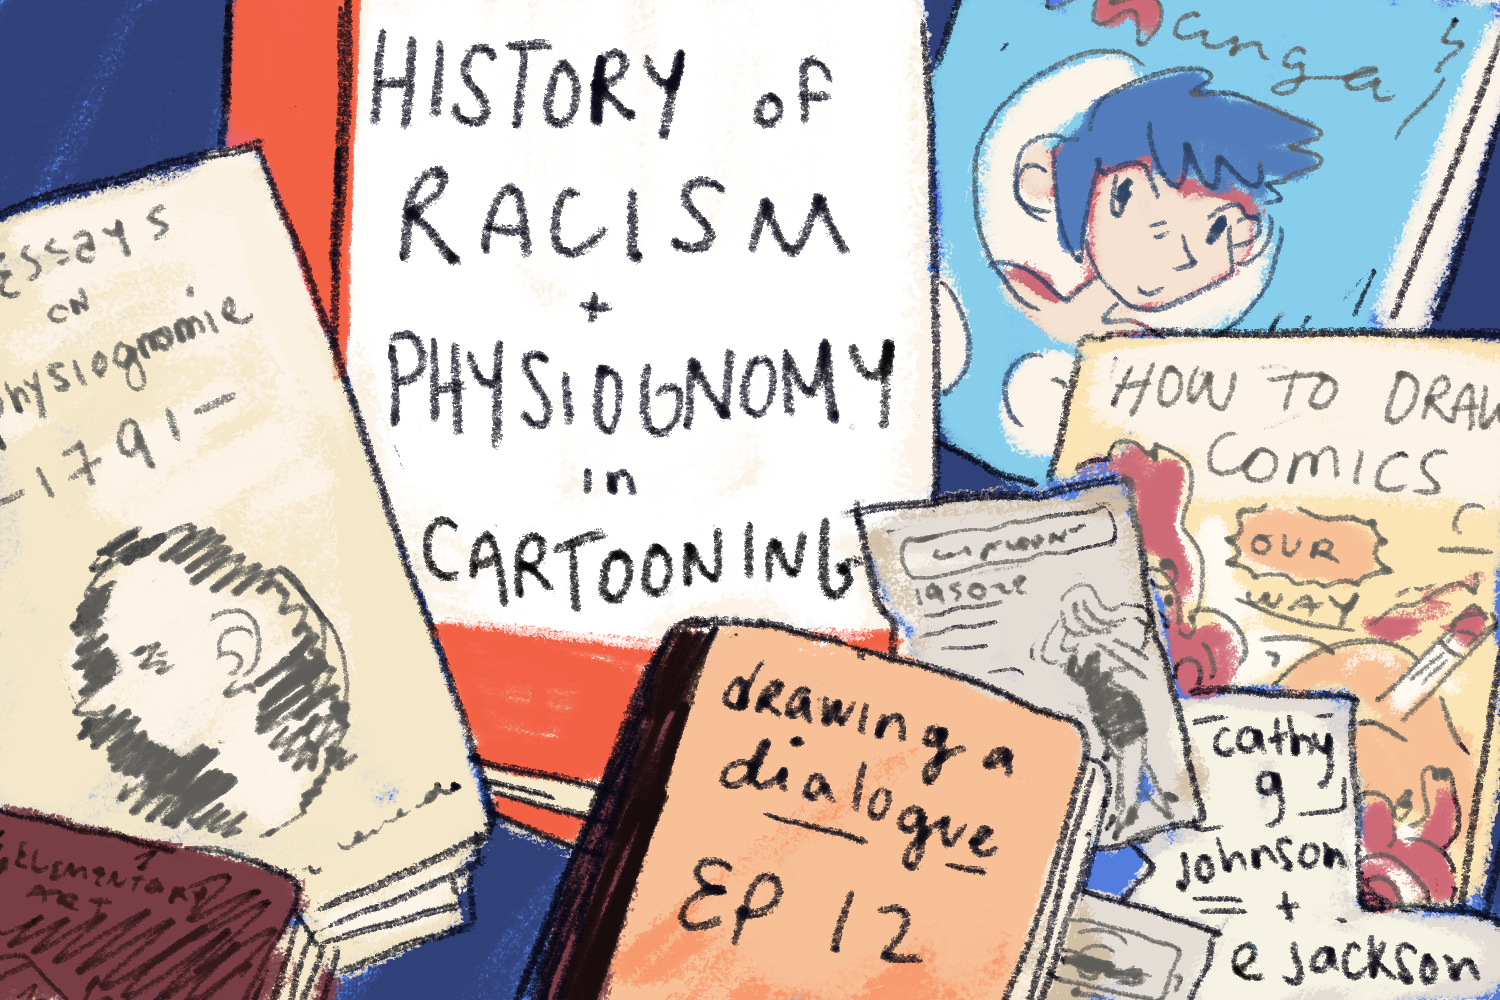 drawing a dialogue episode 12 history of racism physiognomy in